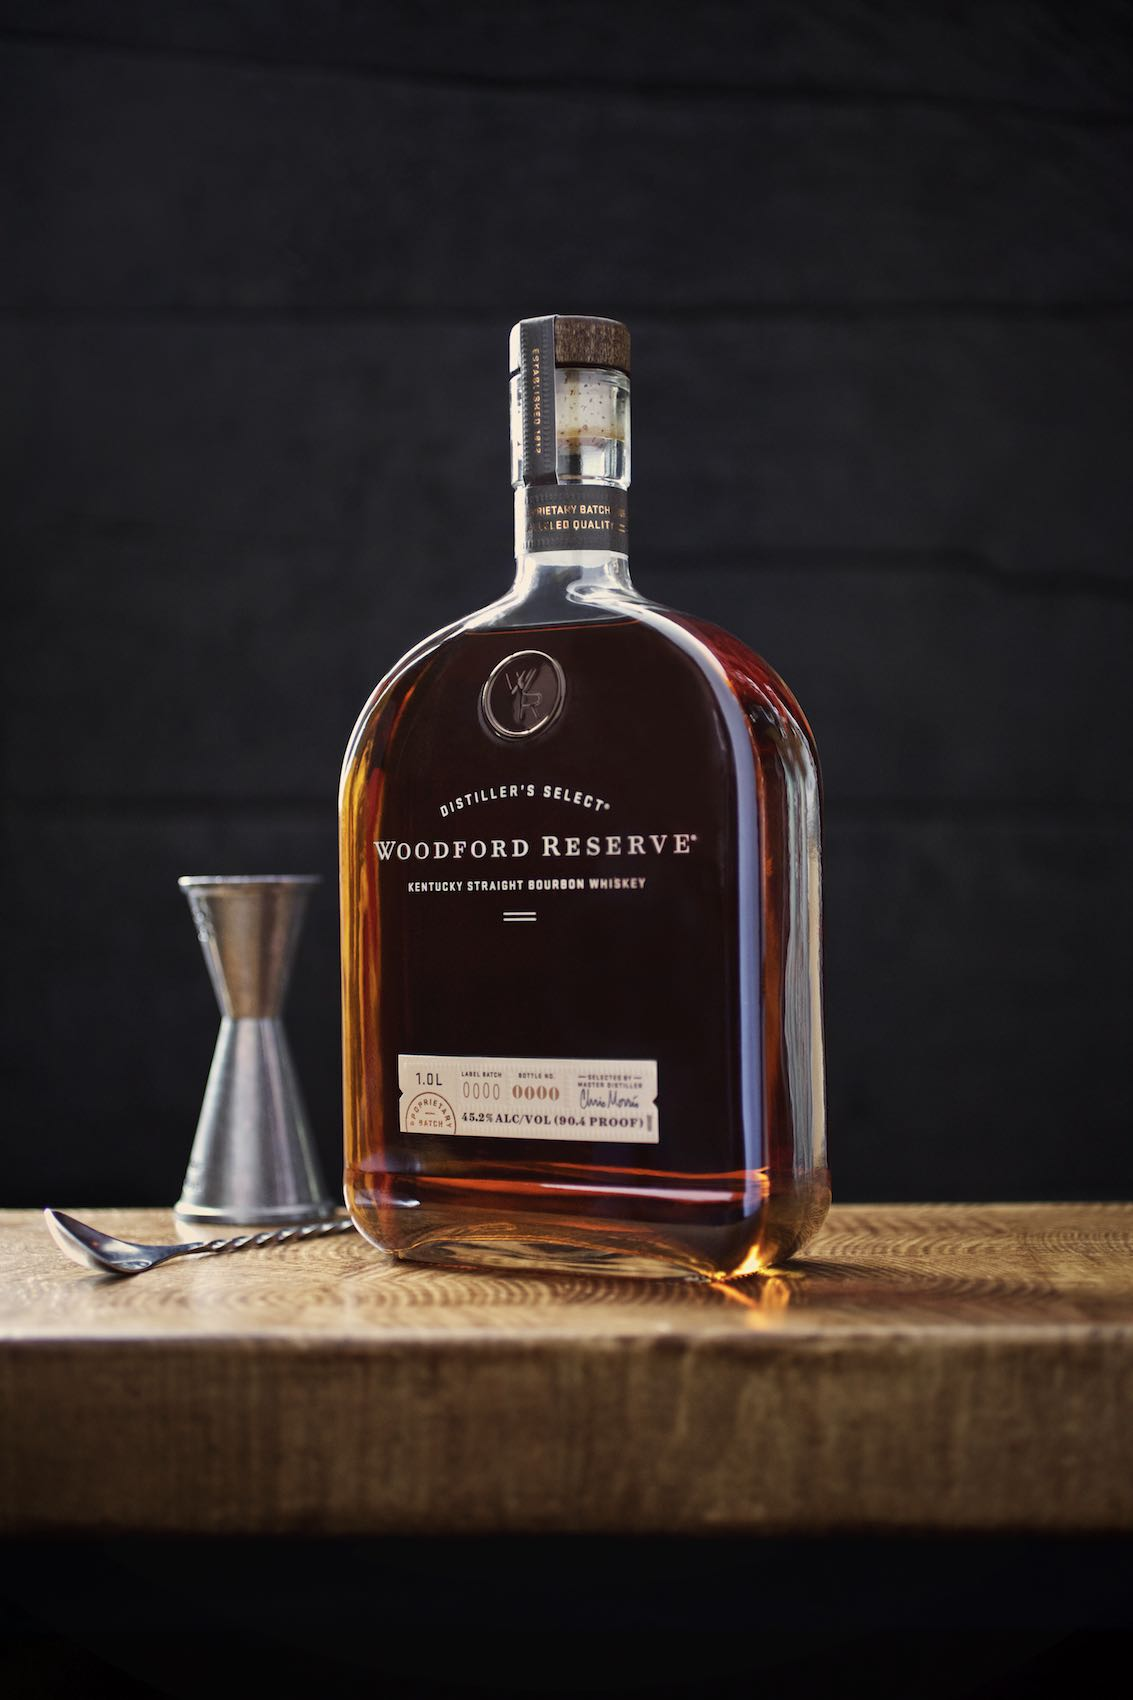 Jody Horton Photography - Woodford Reserve Bourbon Whiskey Ad with bottle on wooden surface with jigger and swizzle.